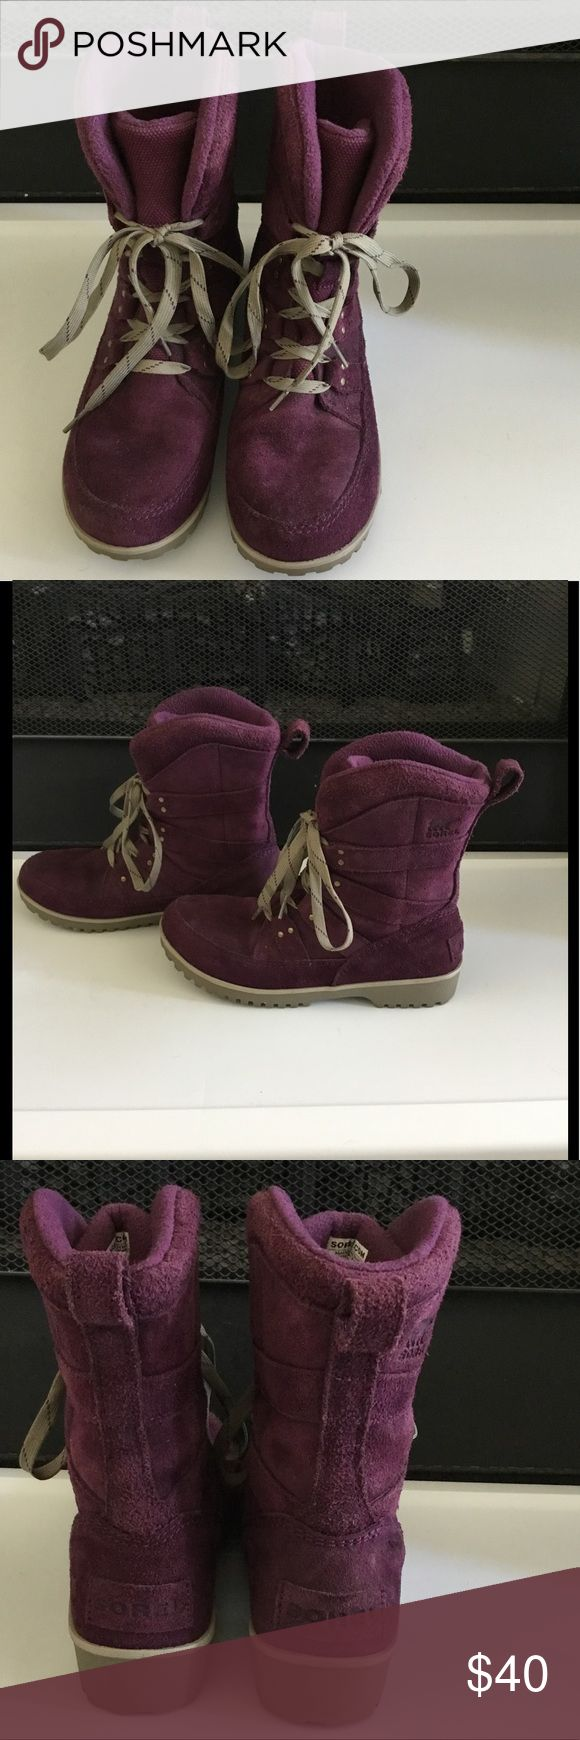 Sorel Snow Boot Waterproof Sorel snow boot. They have a purple water treated sued upper.  These boots are a great lower cut snow boot. The boots are not heavily lined so you would want to wear a heavier sock on colder days. They have been worn a bit, but are still in nice condition. Sorel Shoes Winter & Rain Boots